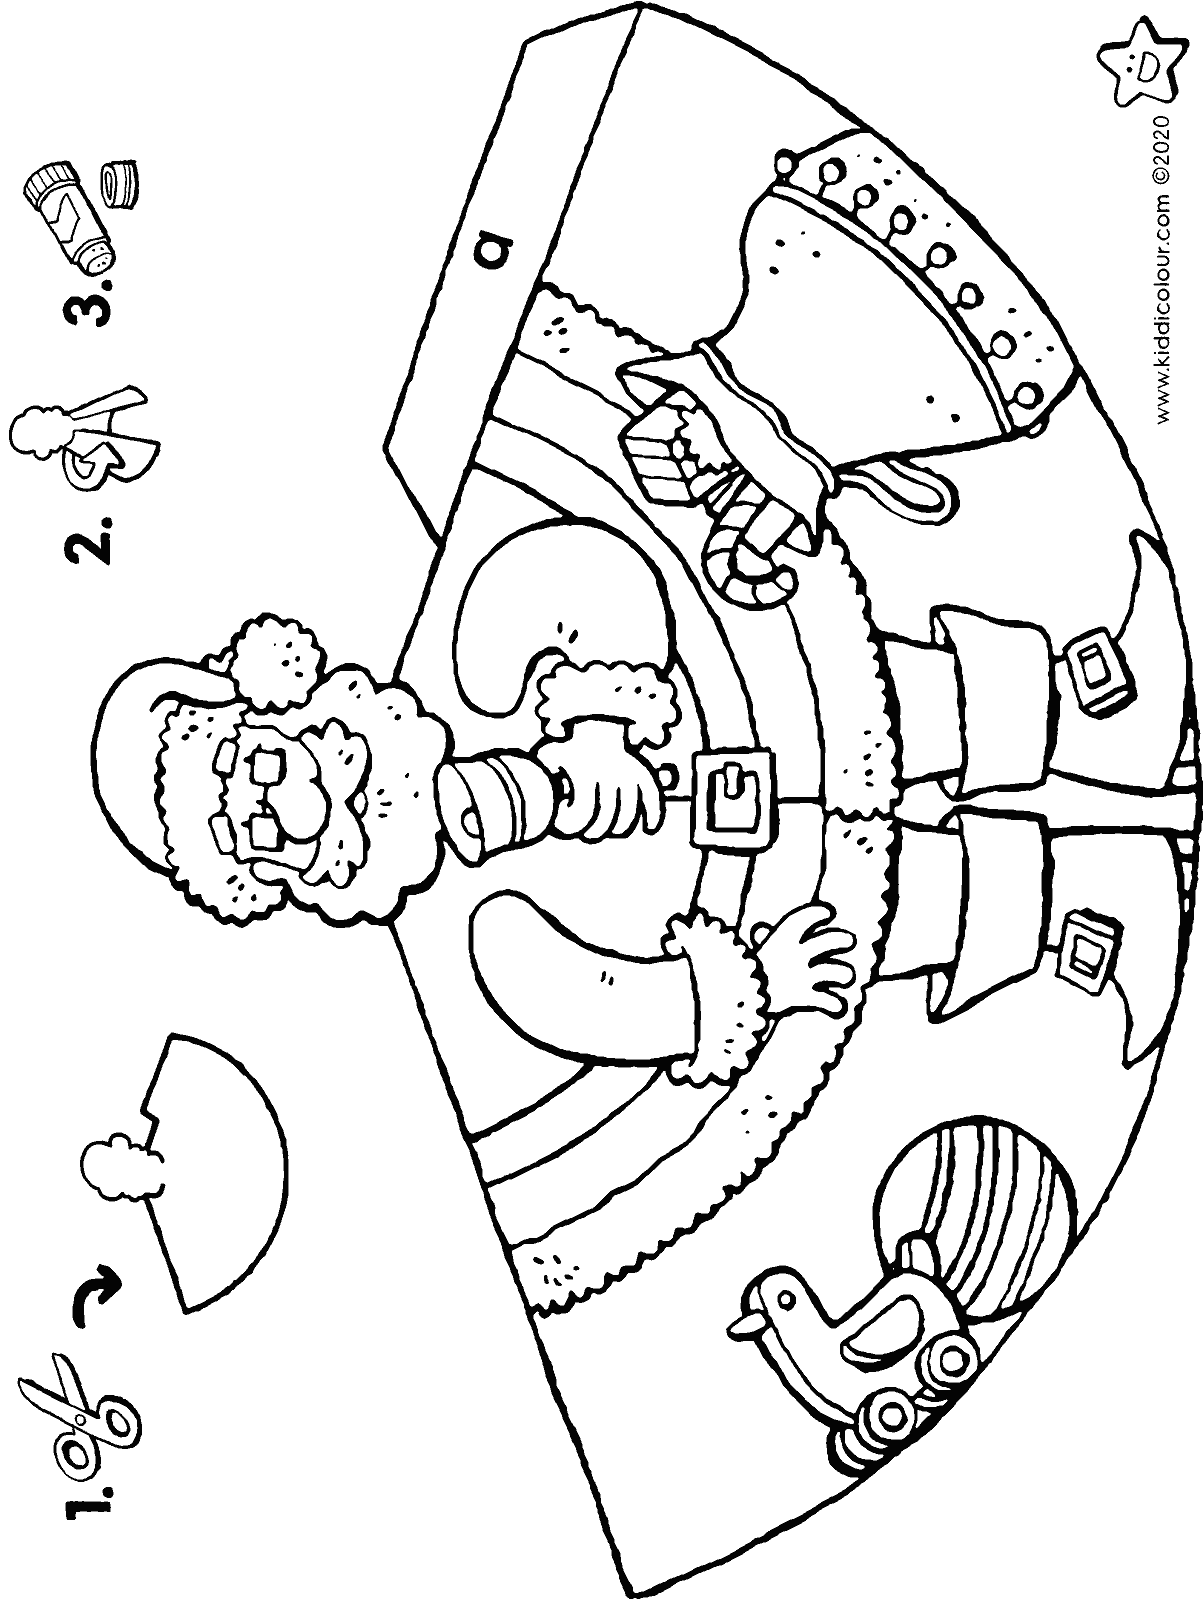 make your own Father Christmas doll colouring page drawing picture 01H